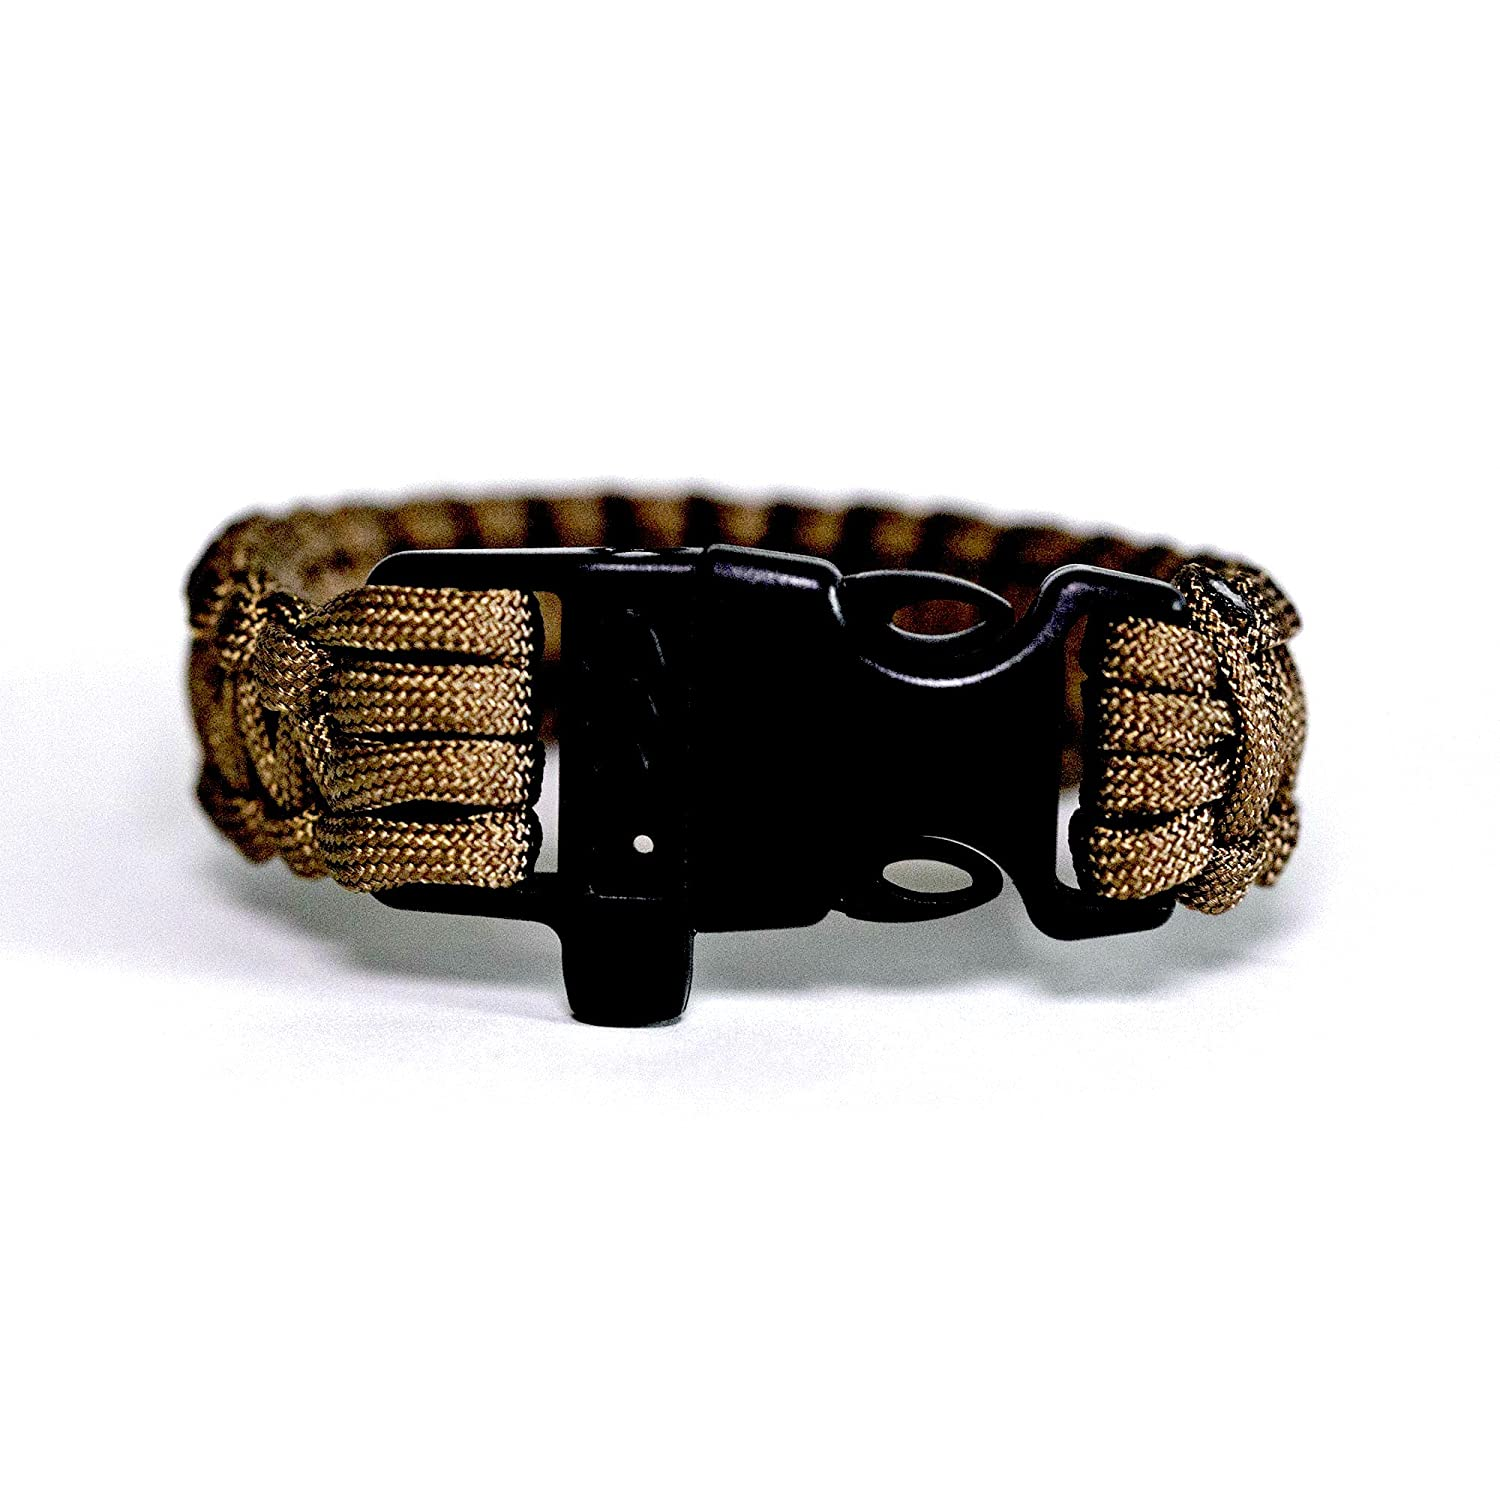 FOXTROT 550lb Survival Military Grade Paracord Belt with Free Matching Paracord Bracelet!!!